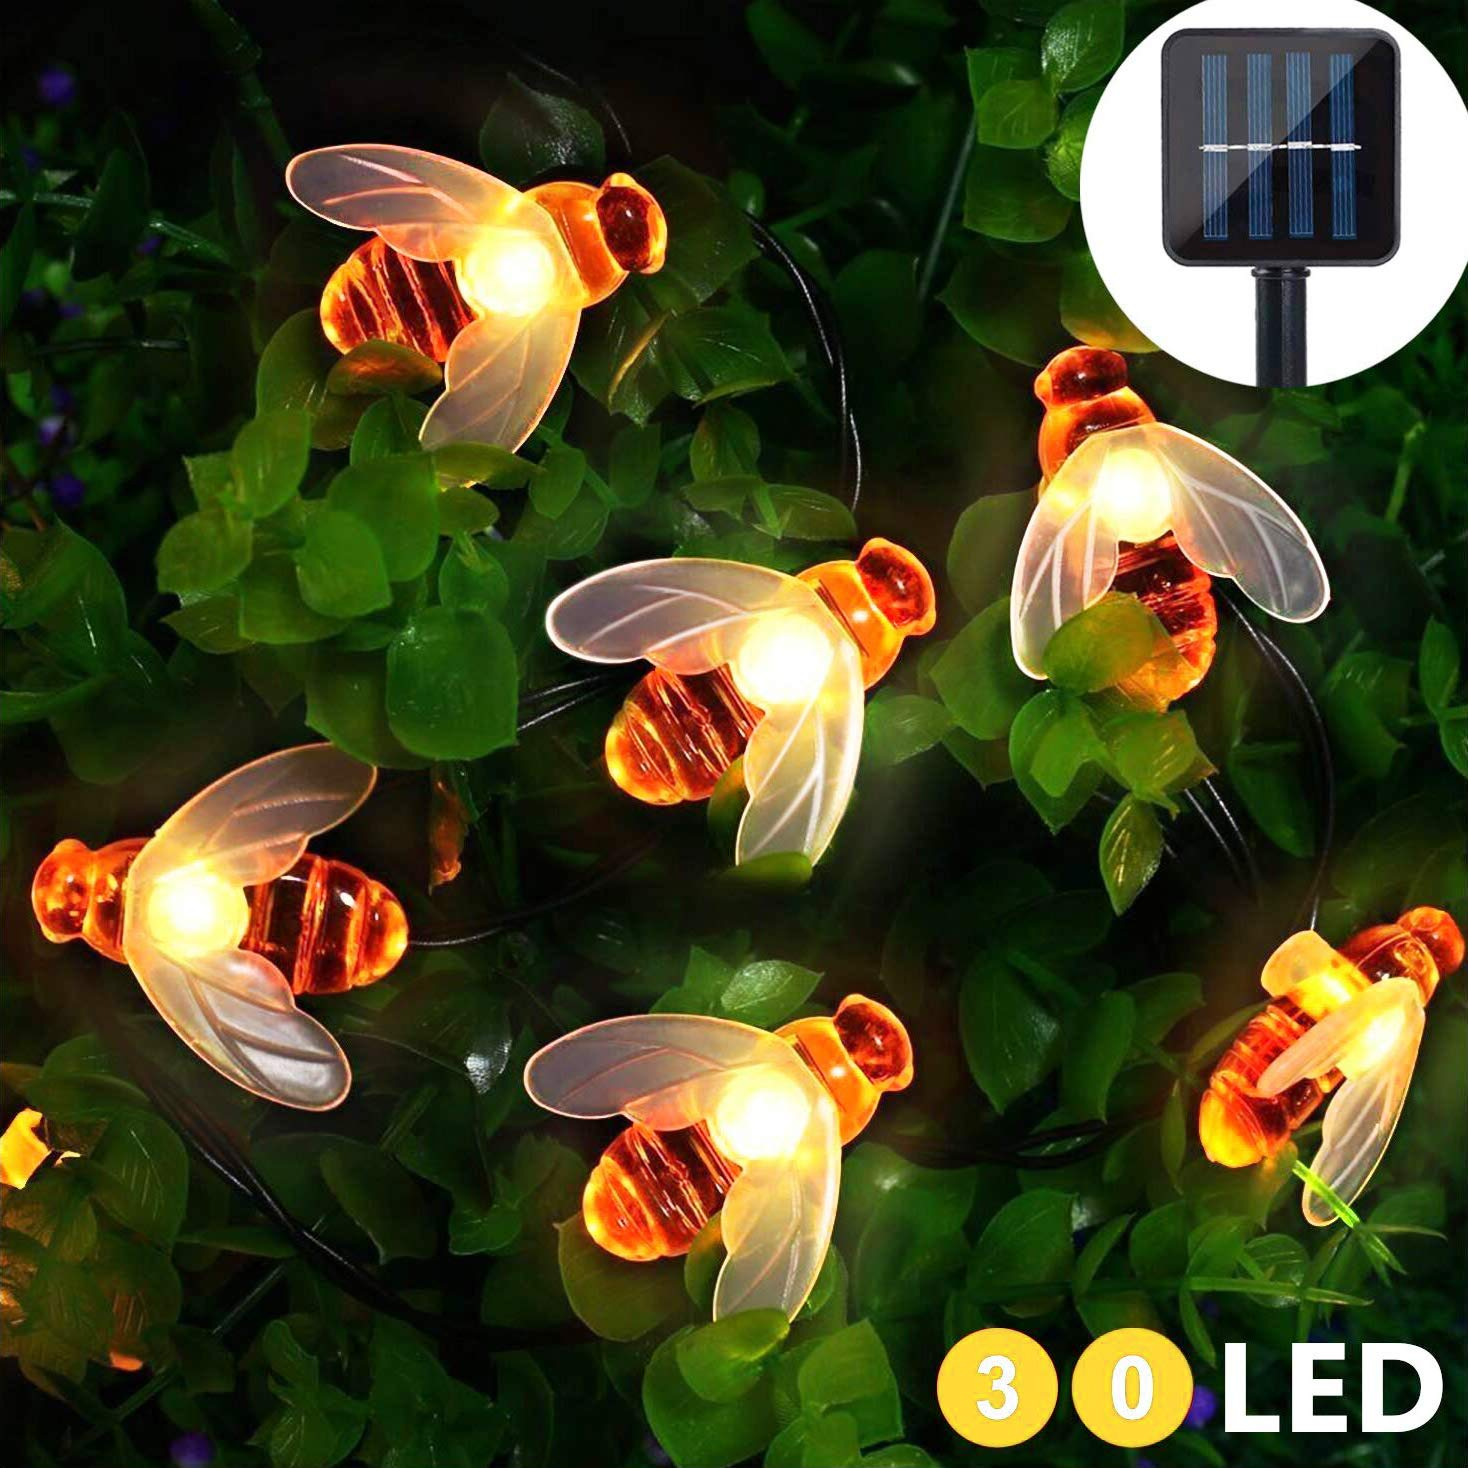 Honeybee Solar String Lights 15FT/4.5M Waterproof 30 Led Solar Powered Outside Fairy Lights Outdoor String Lights for Garden Patio Lawn Landscape Party Wedding Xmas Decoration Titiyogo